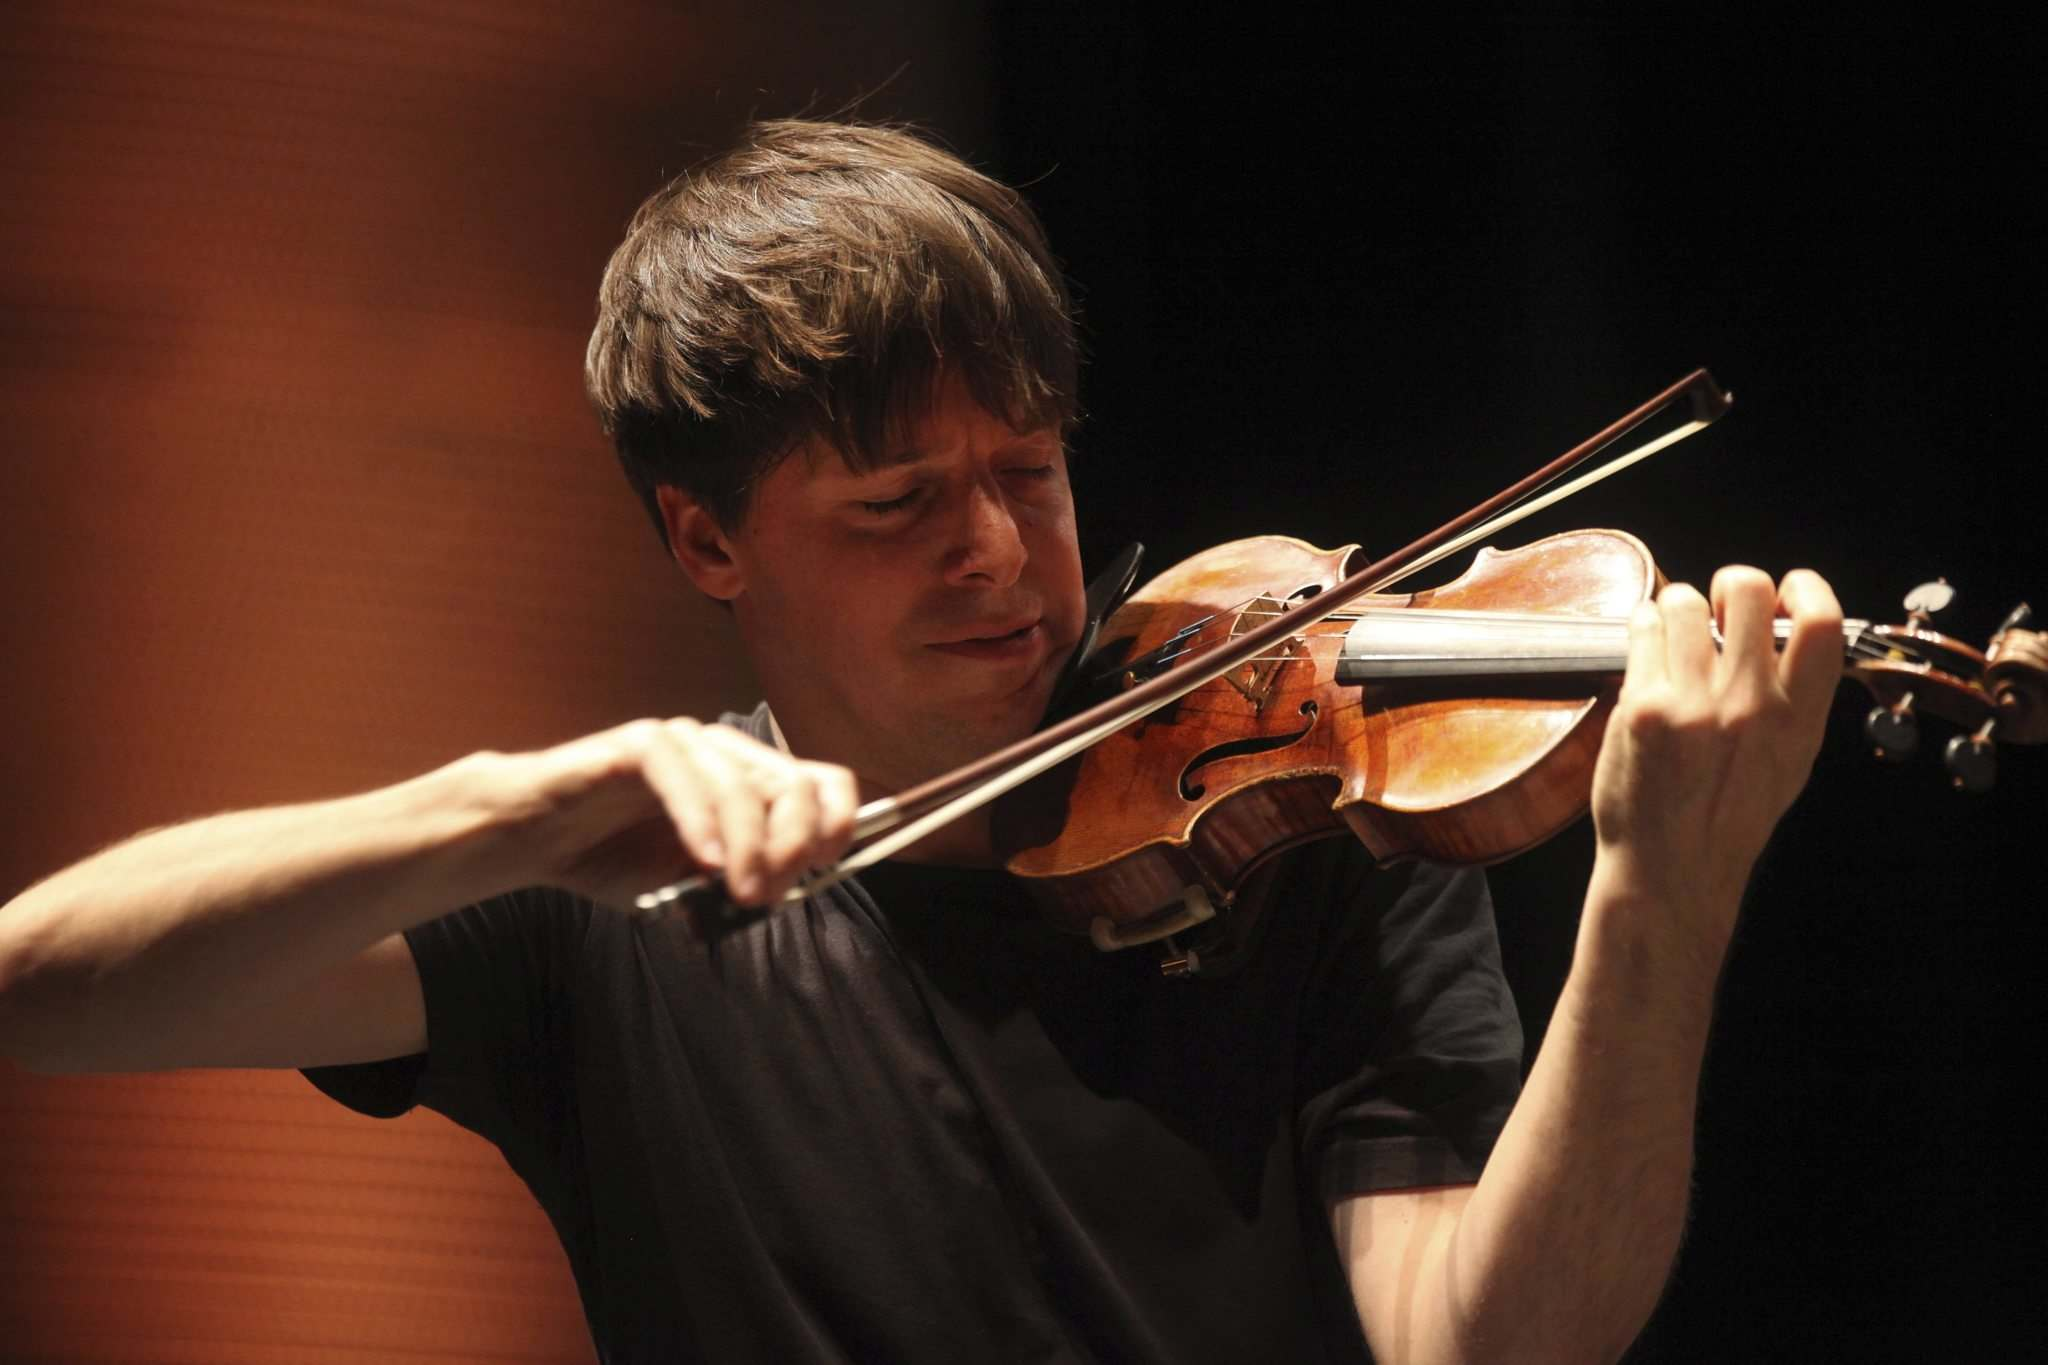 RUTH BONNEVILLE / WINNIPEG FREE PRESS files</p><p>Violinist Joshua Bell, with his US$15-million Stradivarius, rehearses with the WSO at the Centennial Concert Hall in 2016.</p></p>